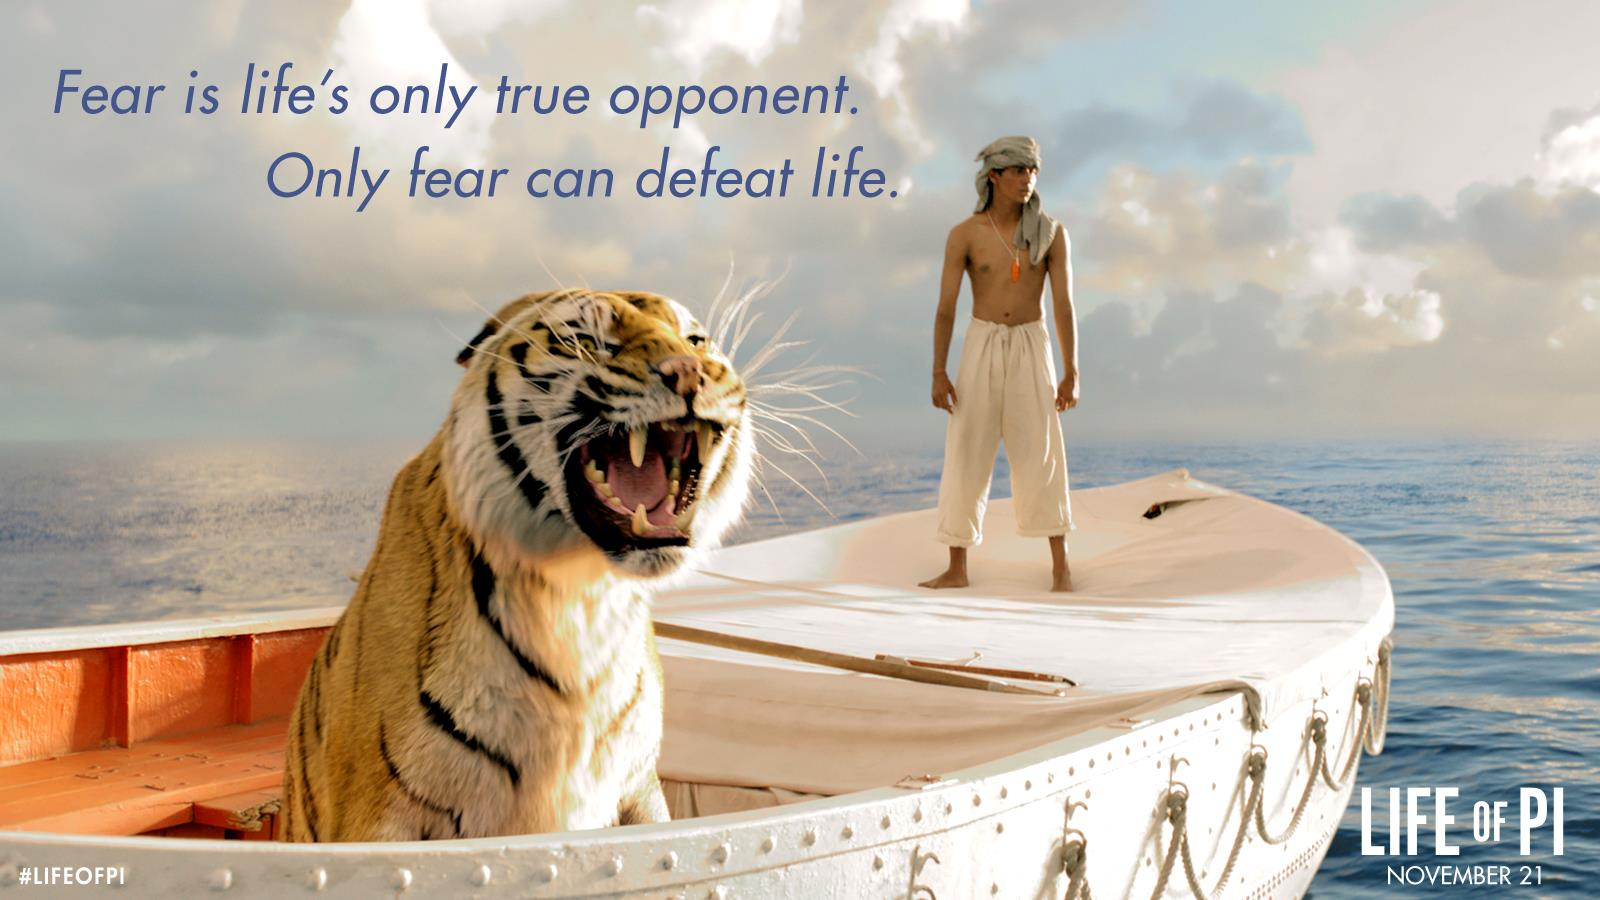 Life of Pi Survival Quotes From